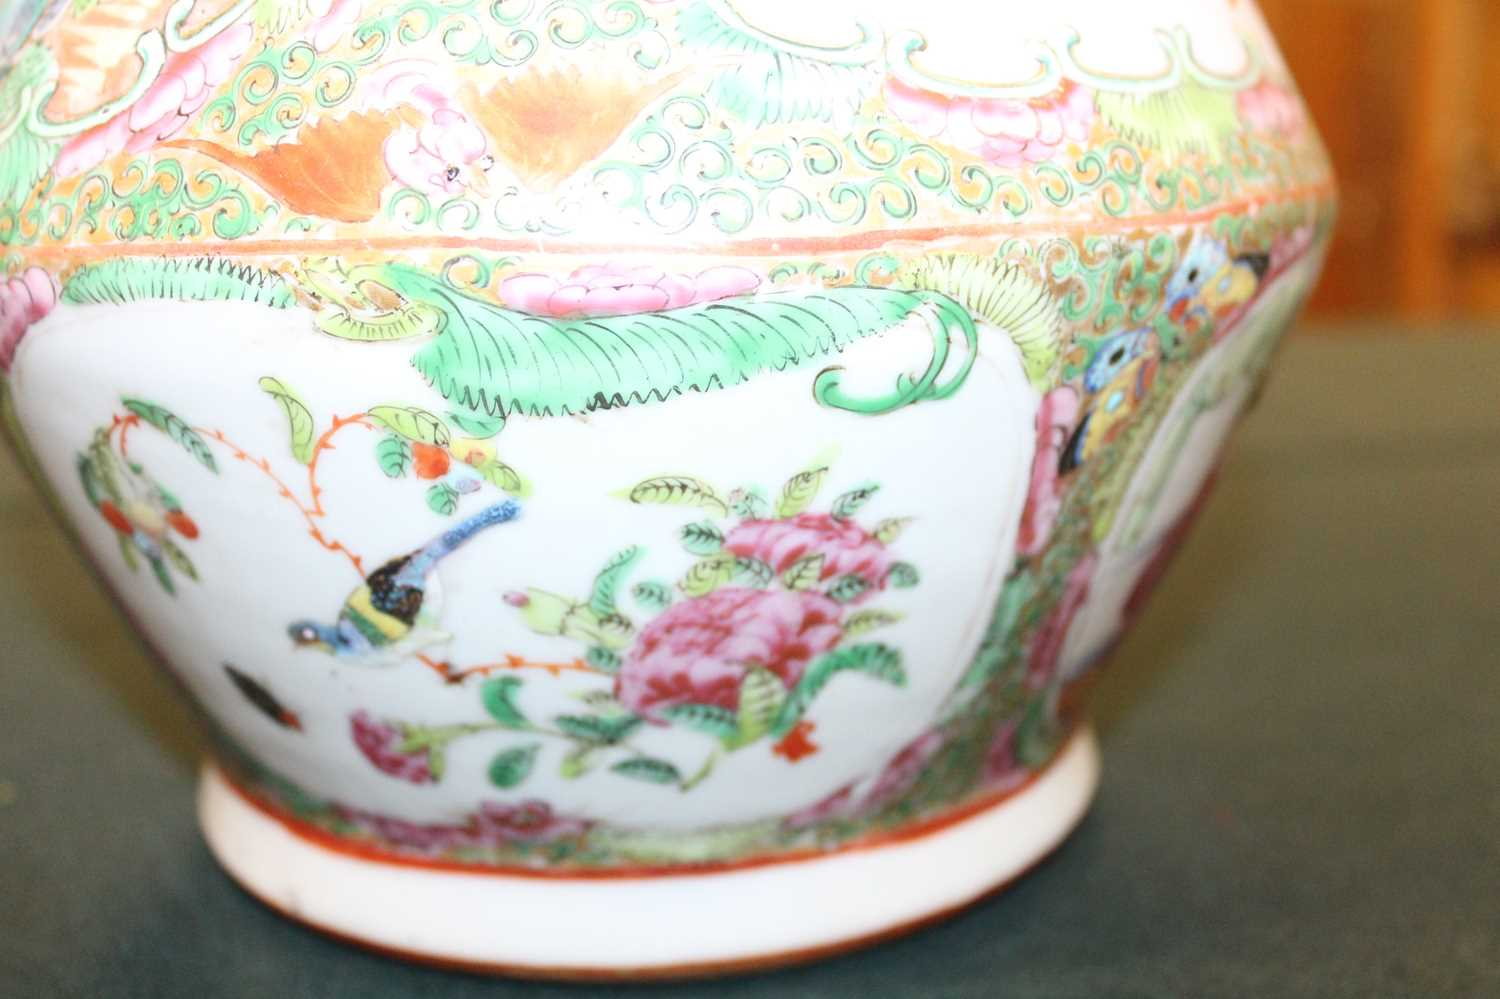 A 19th century Chinese Canton famille rose vase, enamel decorated with ceremonial figure scenes - Image 17 of 18